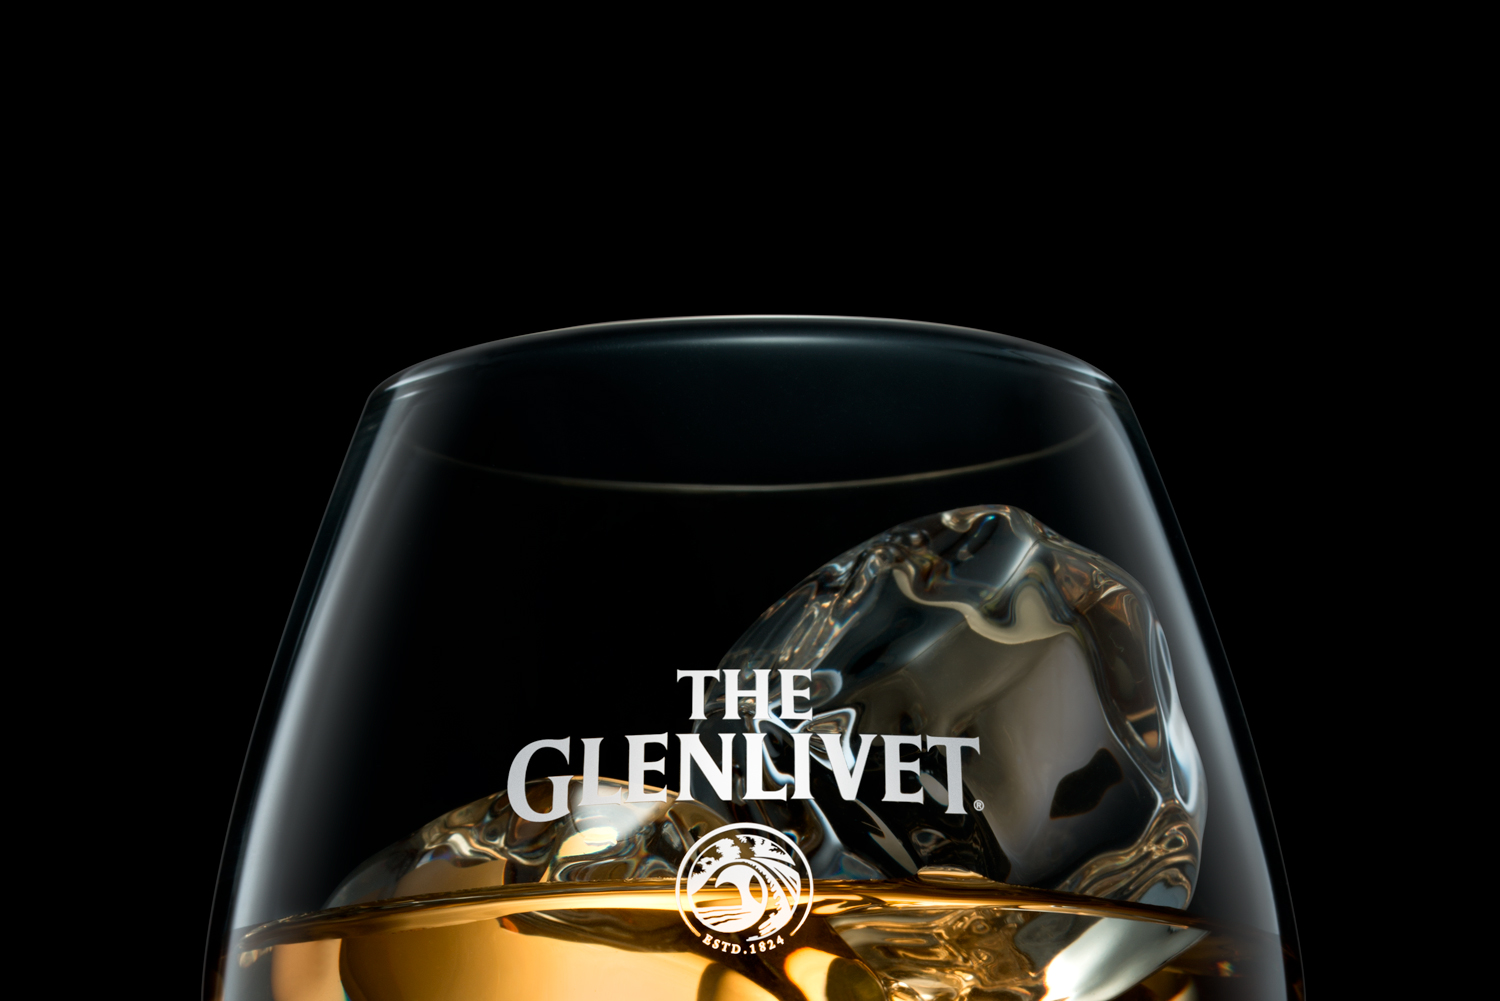 lettstudio_beverage_photography_glenlivet_glass.jpg